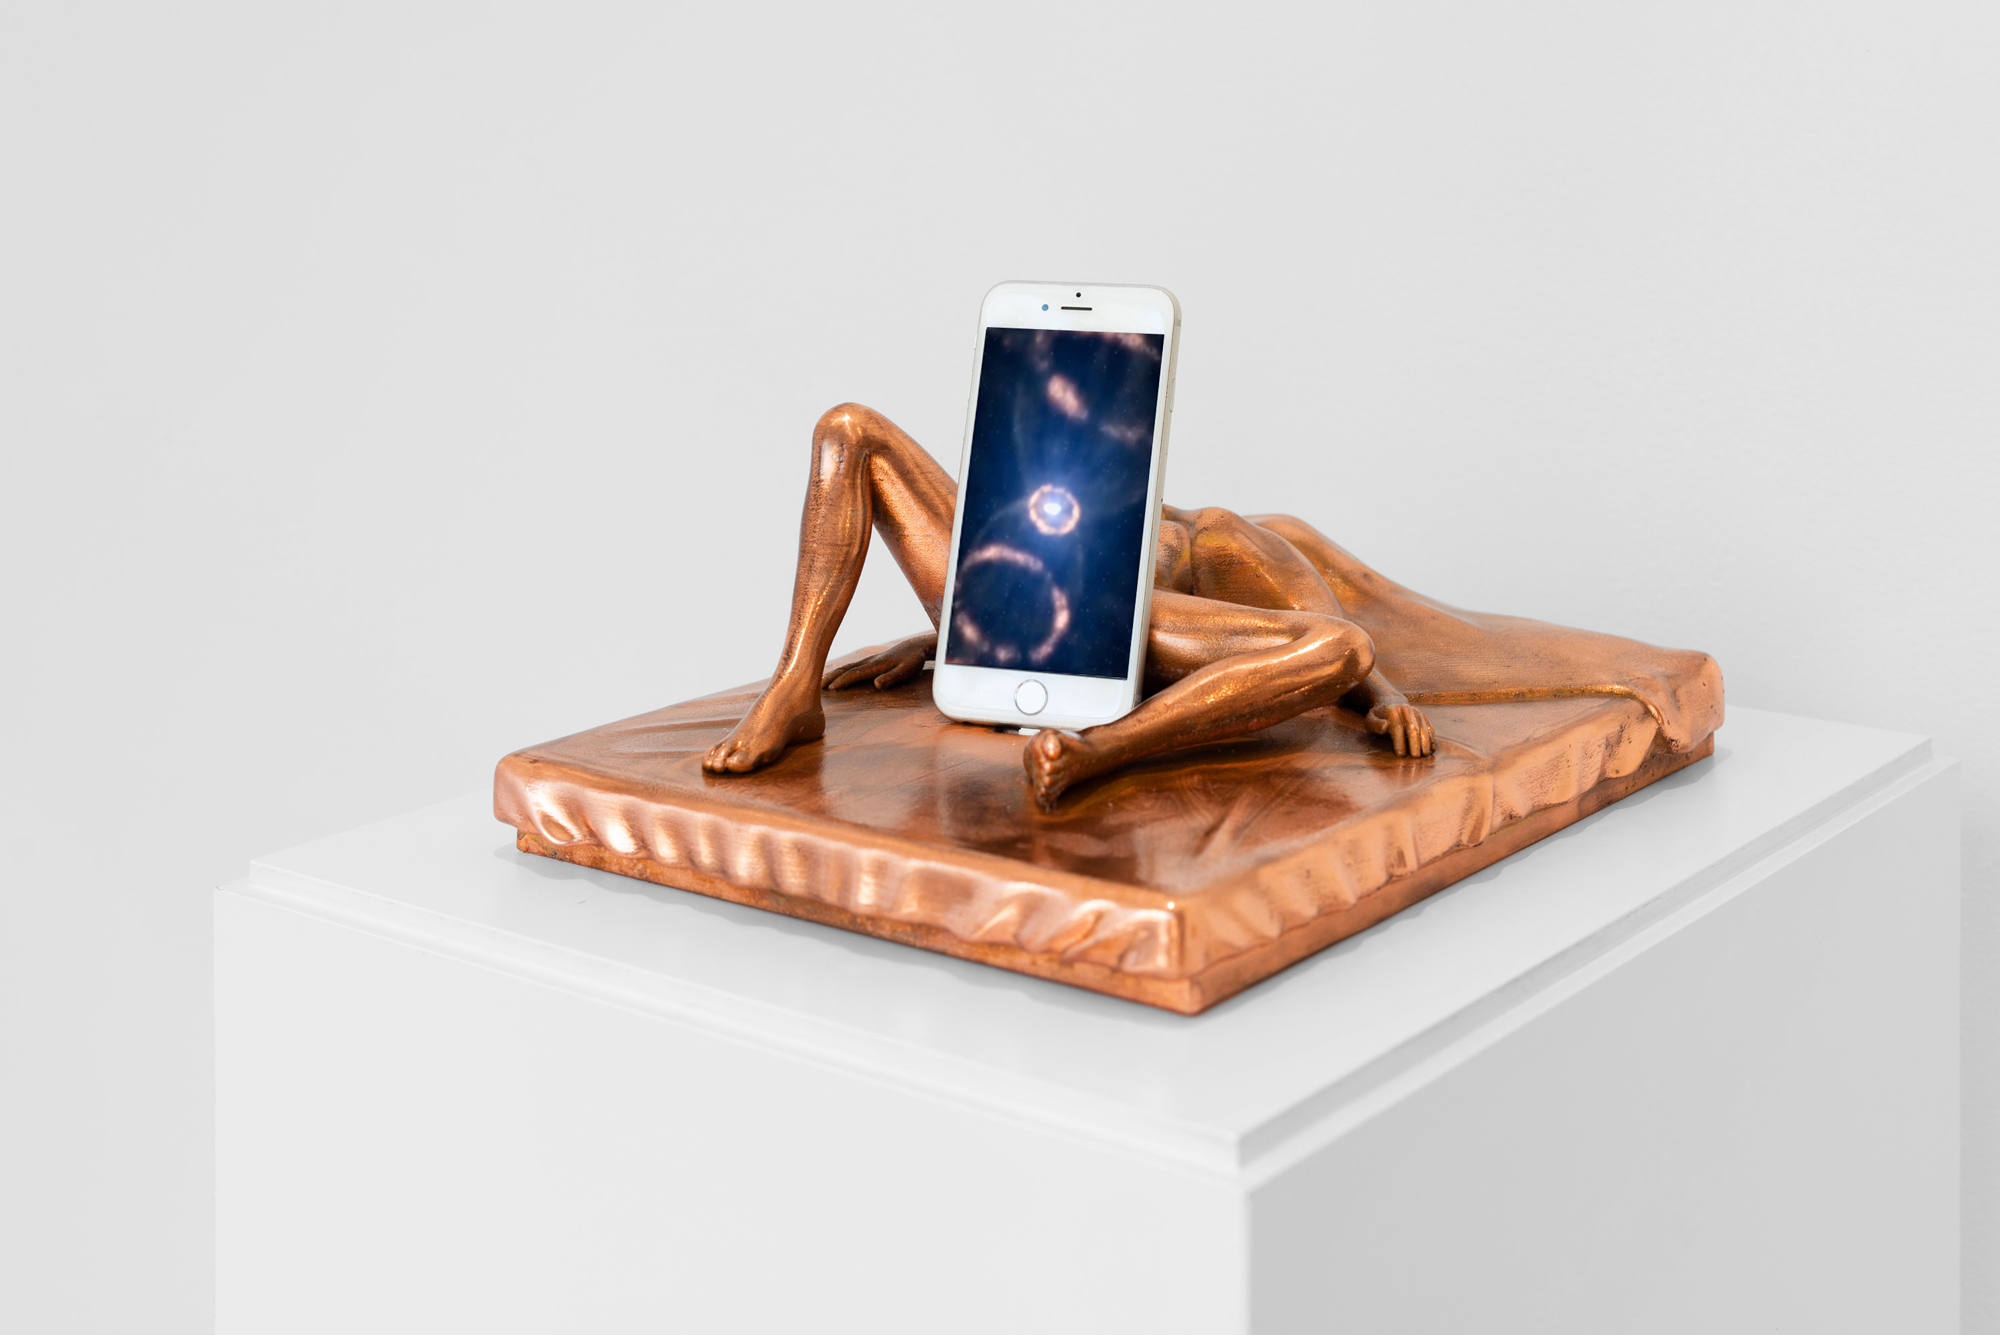 Origins of the Universe, 2017-2018 3D printed polyamide with copper plating, smart phone, fixed video, pedestal, plexi vitrine 5 x 10 x 13.4 in, sculpture 54.75 x 14 x 17.5 in © Courtesy of the artist